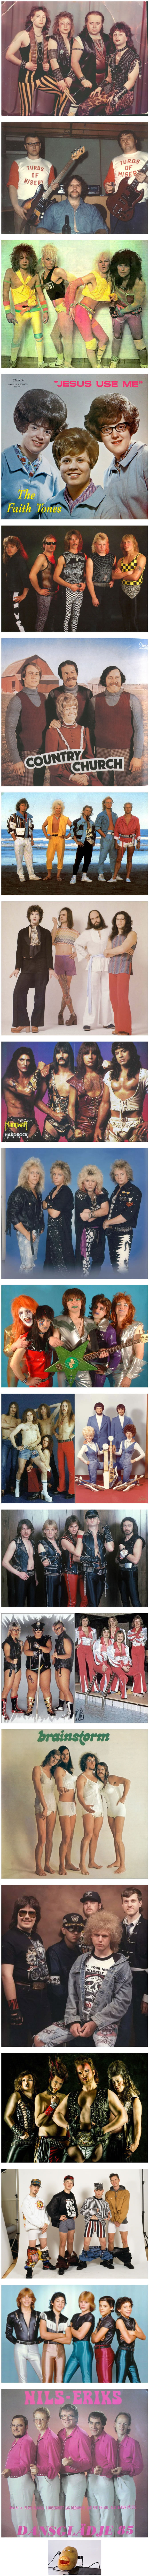 Weirdest Band Photos Ever